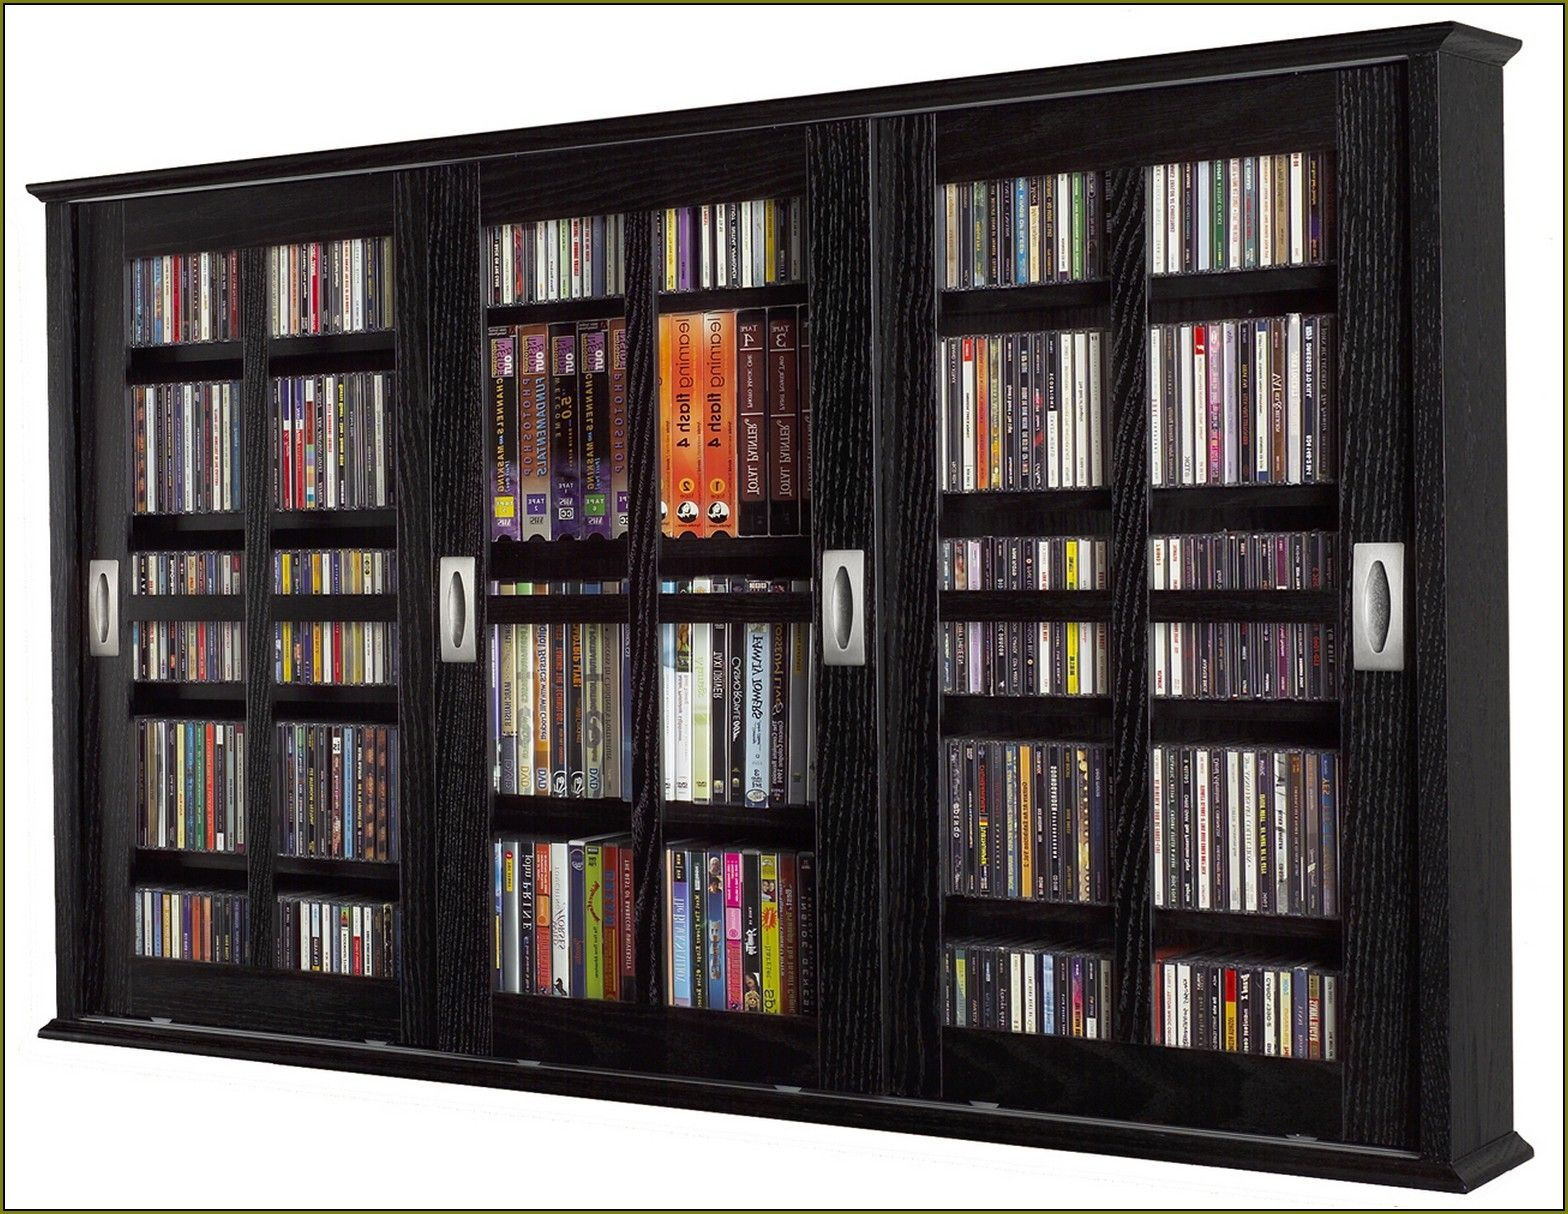 Black dvd cabinet with glass doors httpbetdaffaires dvd storage cabinets with glass doors for measuring your face frame cabinets for cupboard doors that are new step by step planetlyrics Images